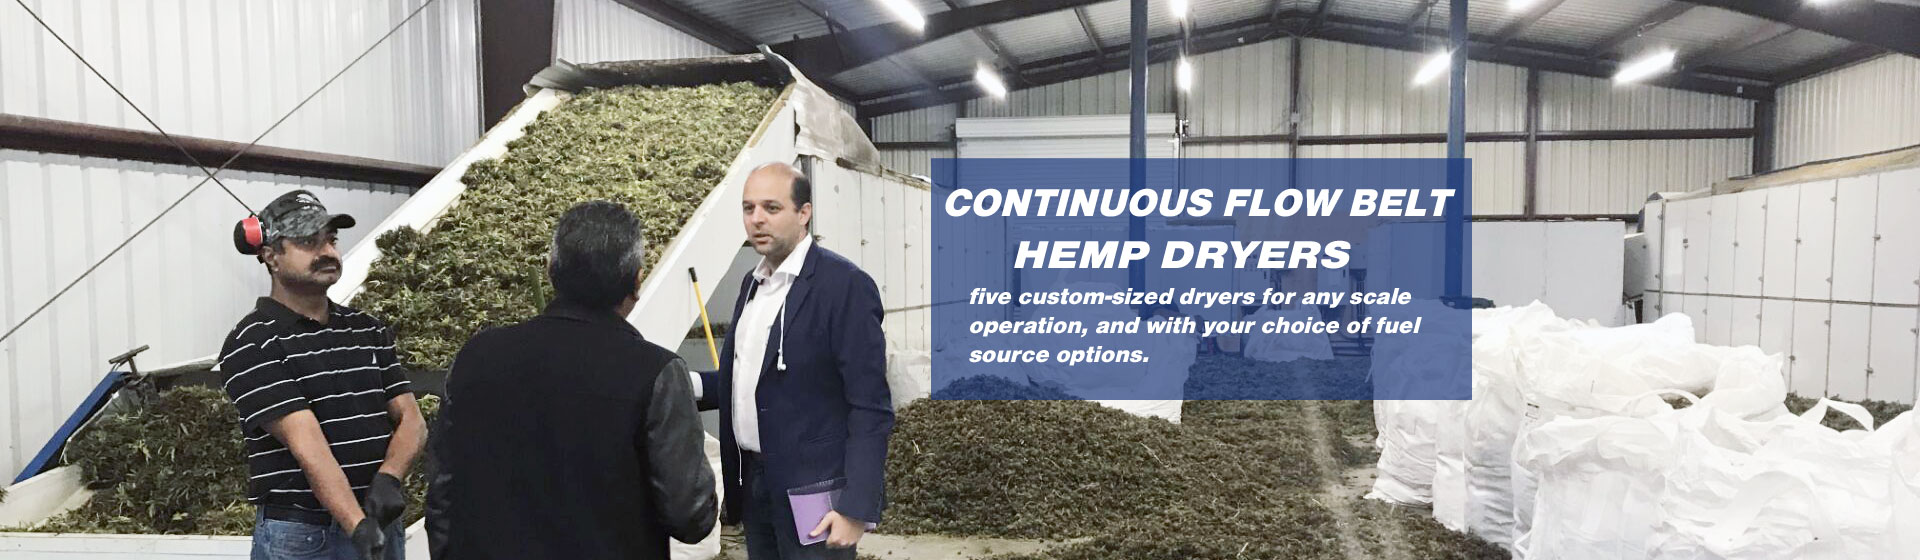 continuous flow belt hemp dryers